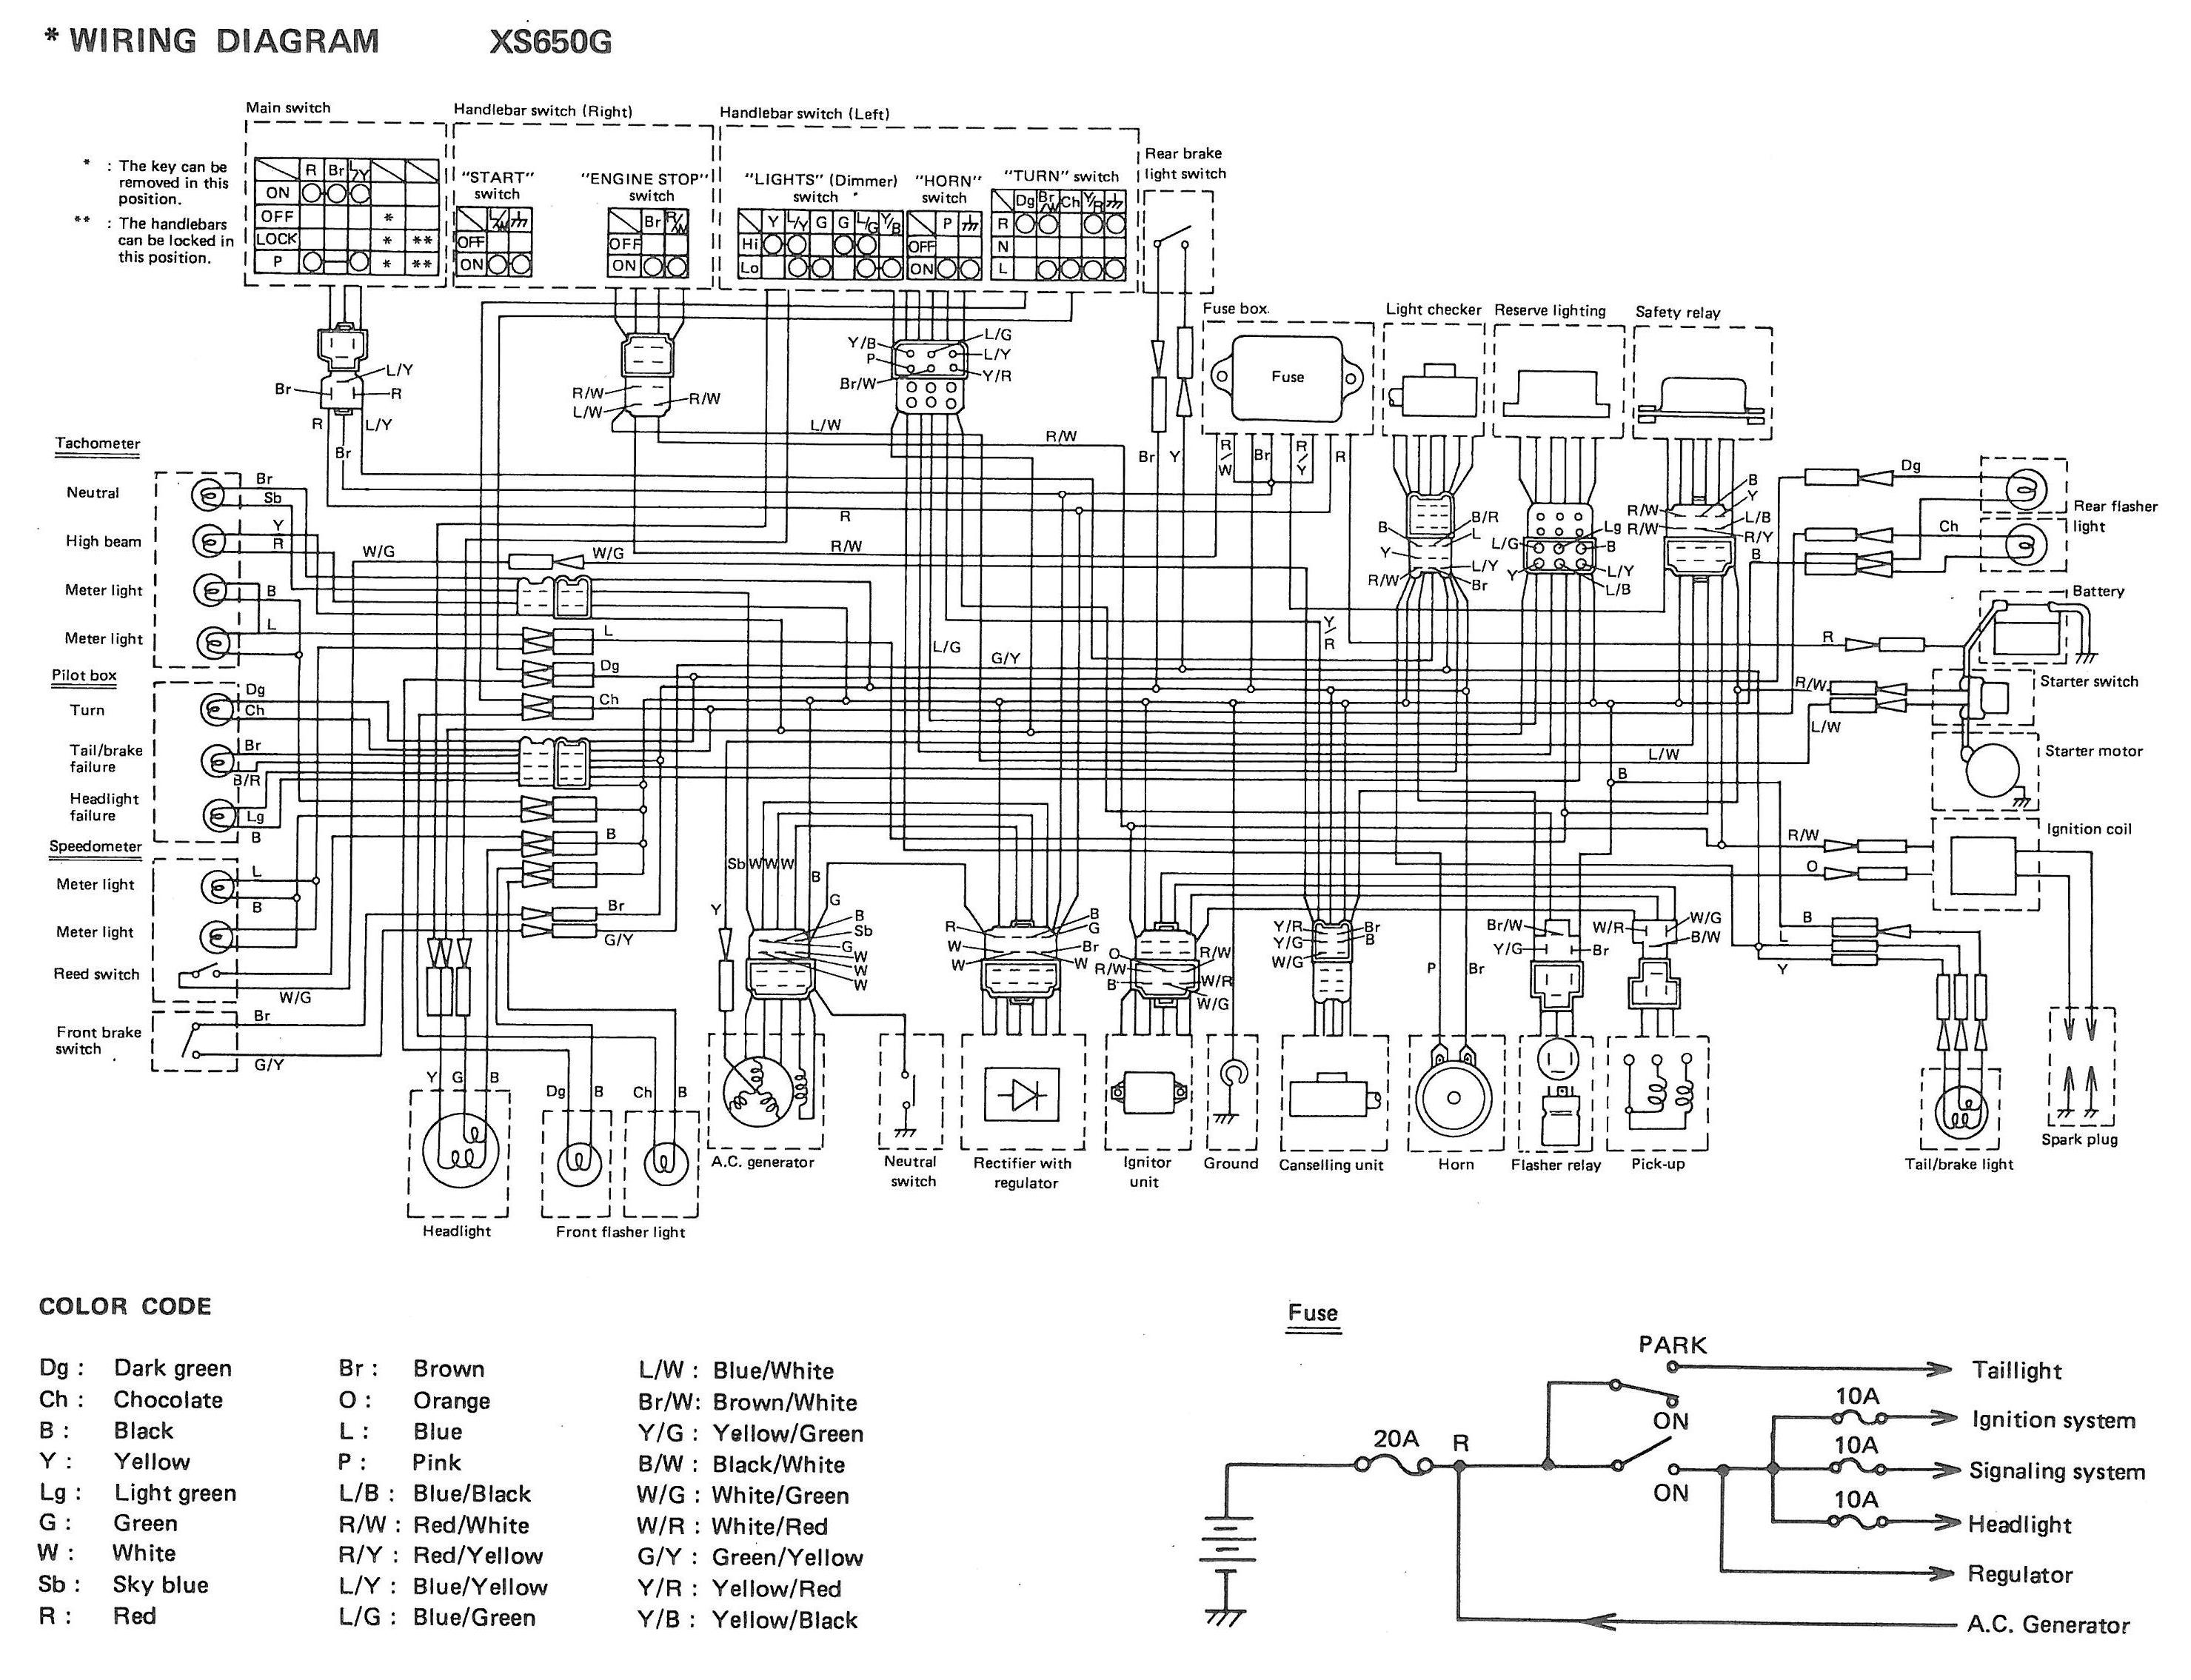 Ford Taurus Radio Wiring Diagram As Well Aprilia Rs 50 Af1 Sr500 Auto Electrical Rh Radtour Co